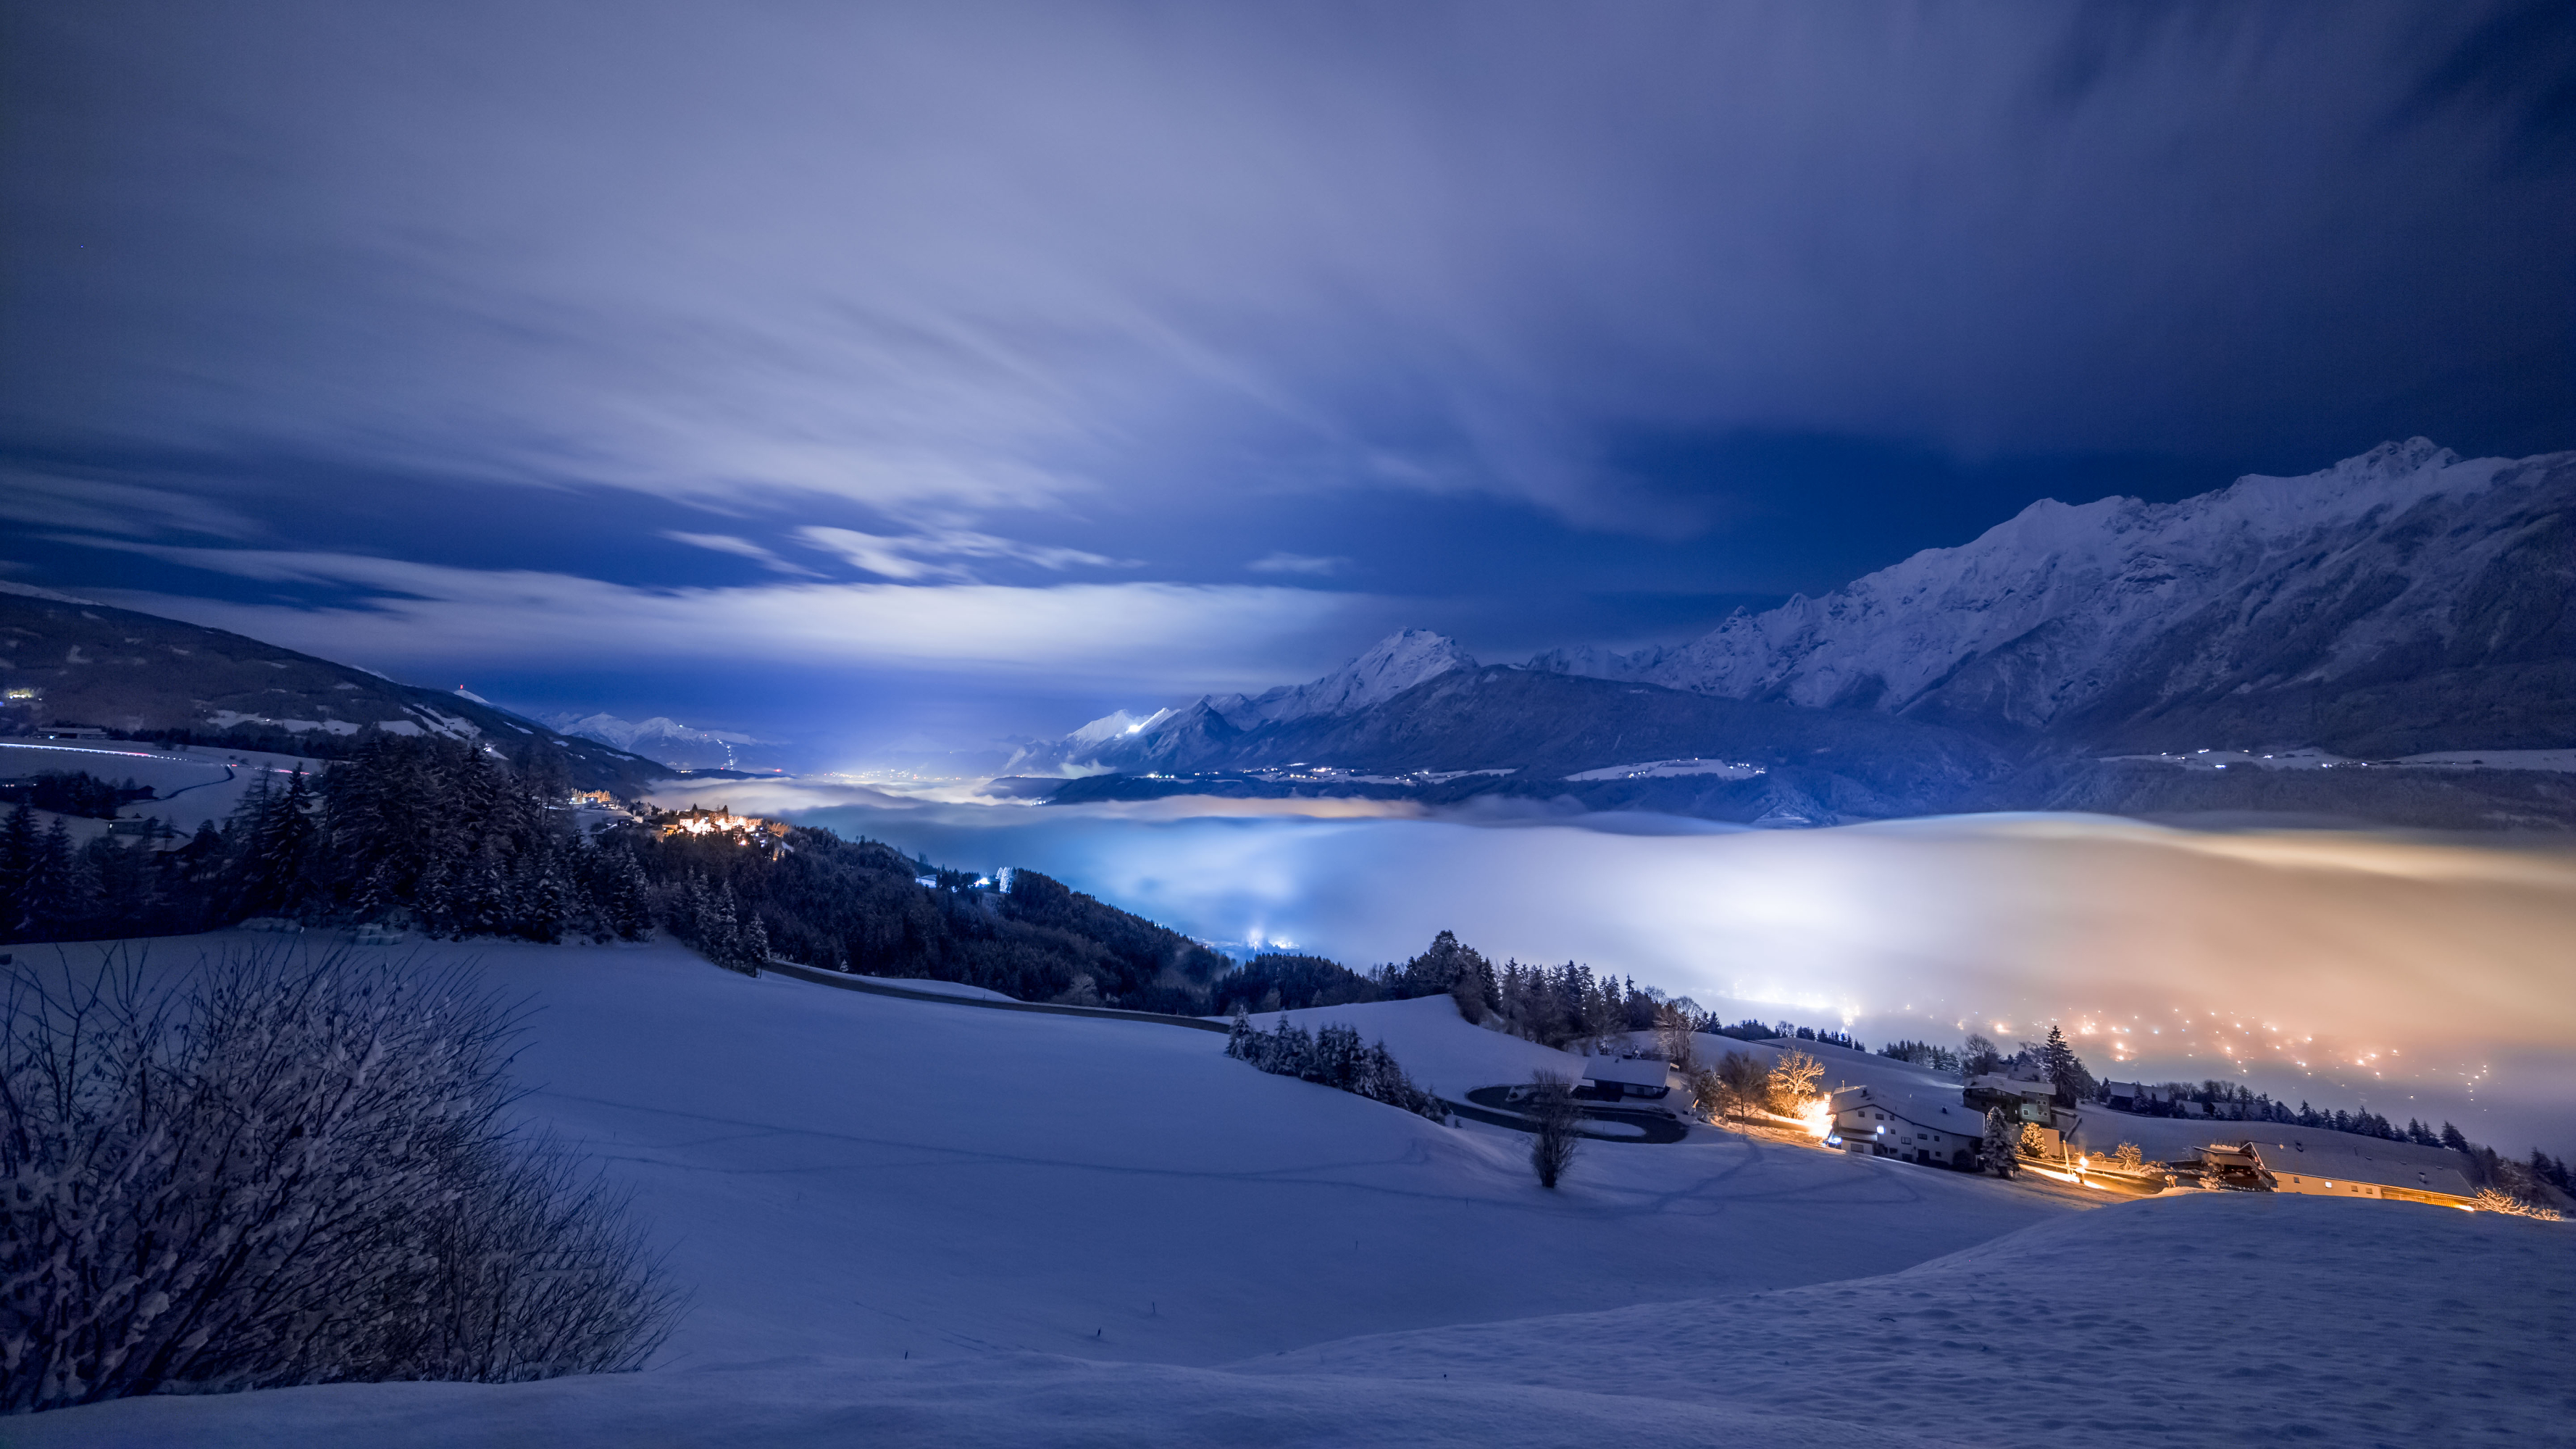 Winter Night In The Mountains Hd Wallpaper Background